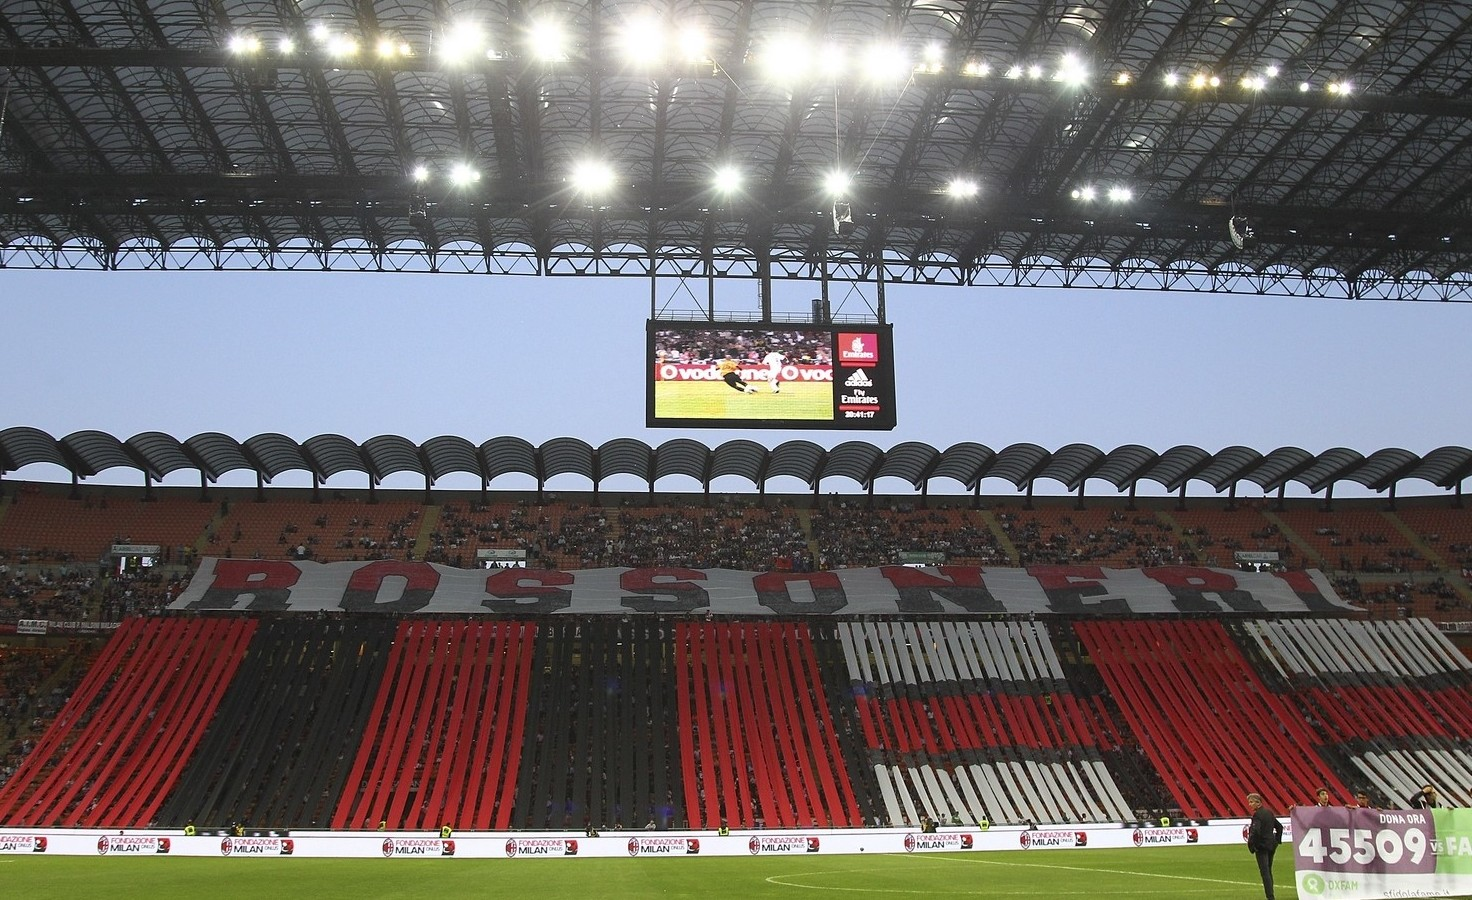 Milan Genoa streaming gratis su siti str